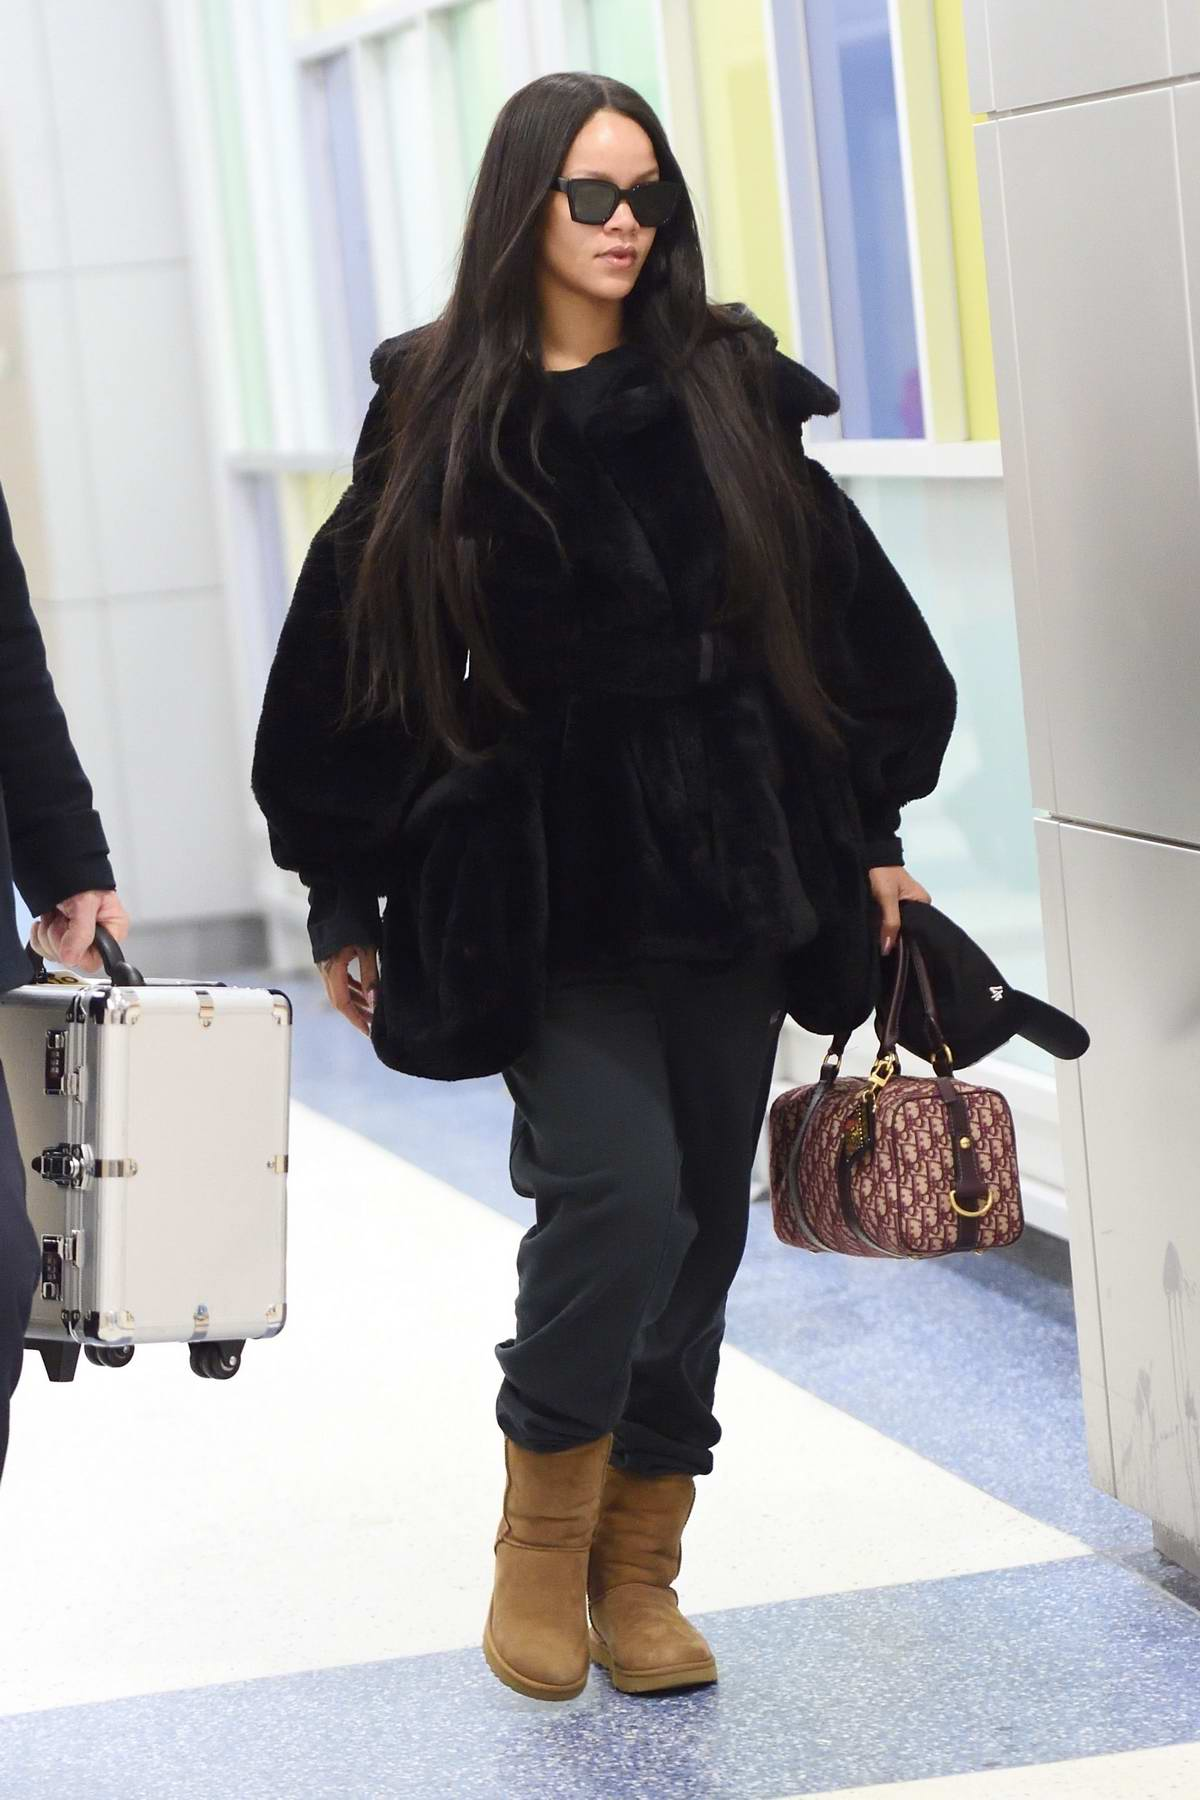 Rihanna looks chic in her black fur coat and sweatpants with UGG boots as she arrives at JFK airport in New York City